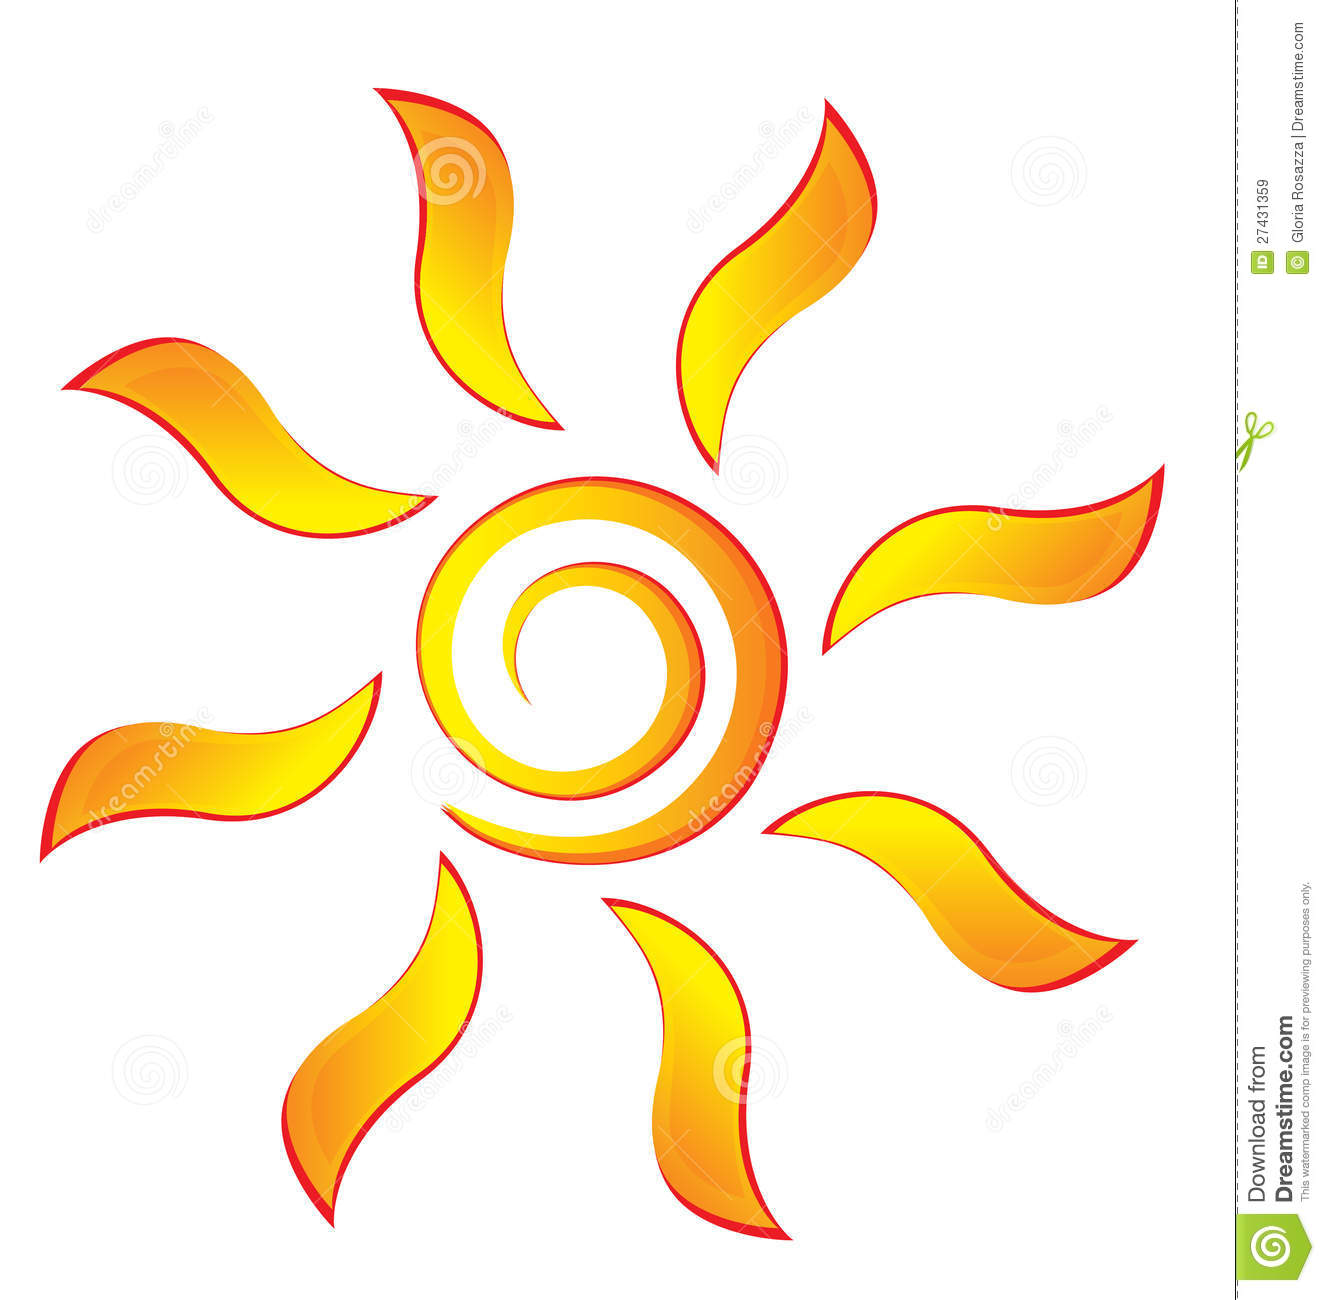 Sun With Swirly Rays Royalty Free Stock Images - Image: 27431359